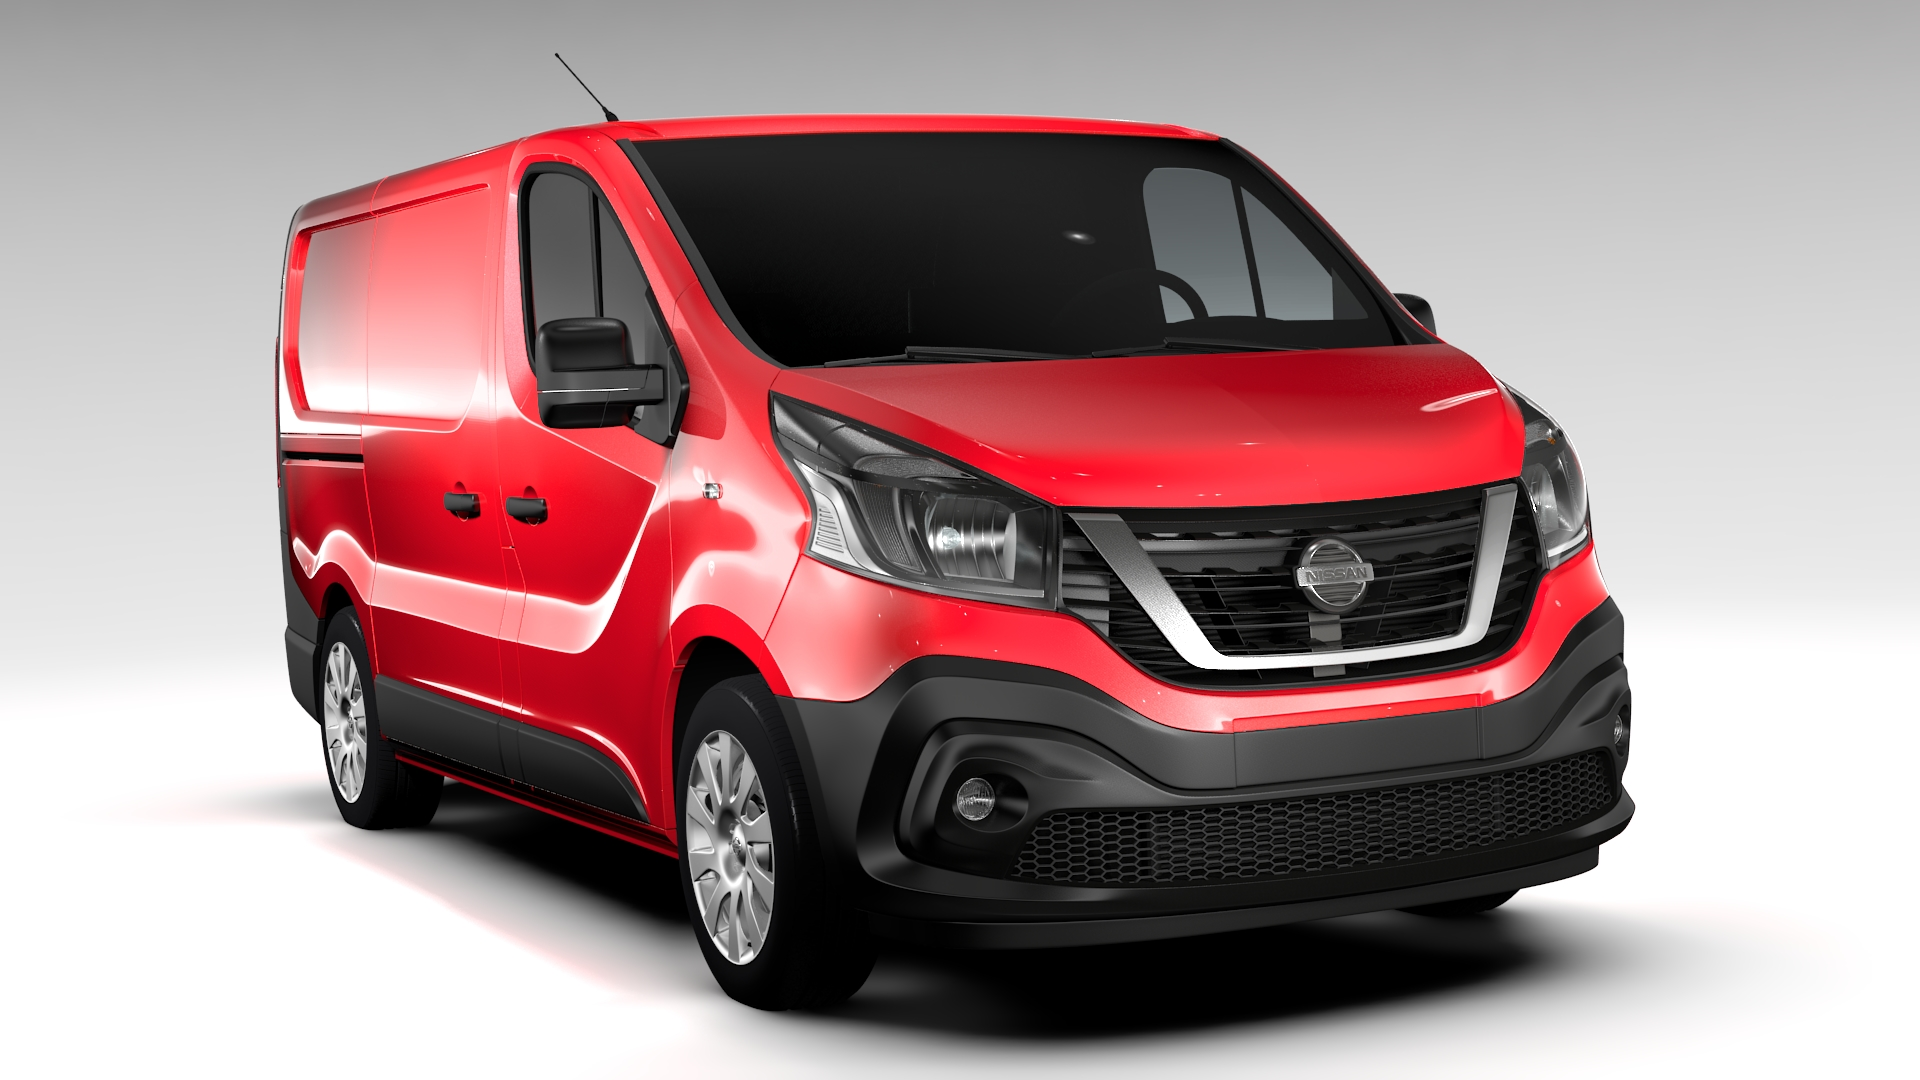 nissan nv300 van 2016 3d model 3ds max fbx c4d le do thoil le hrc xsi obj 220955